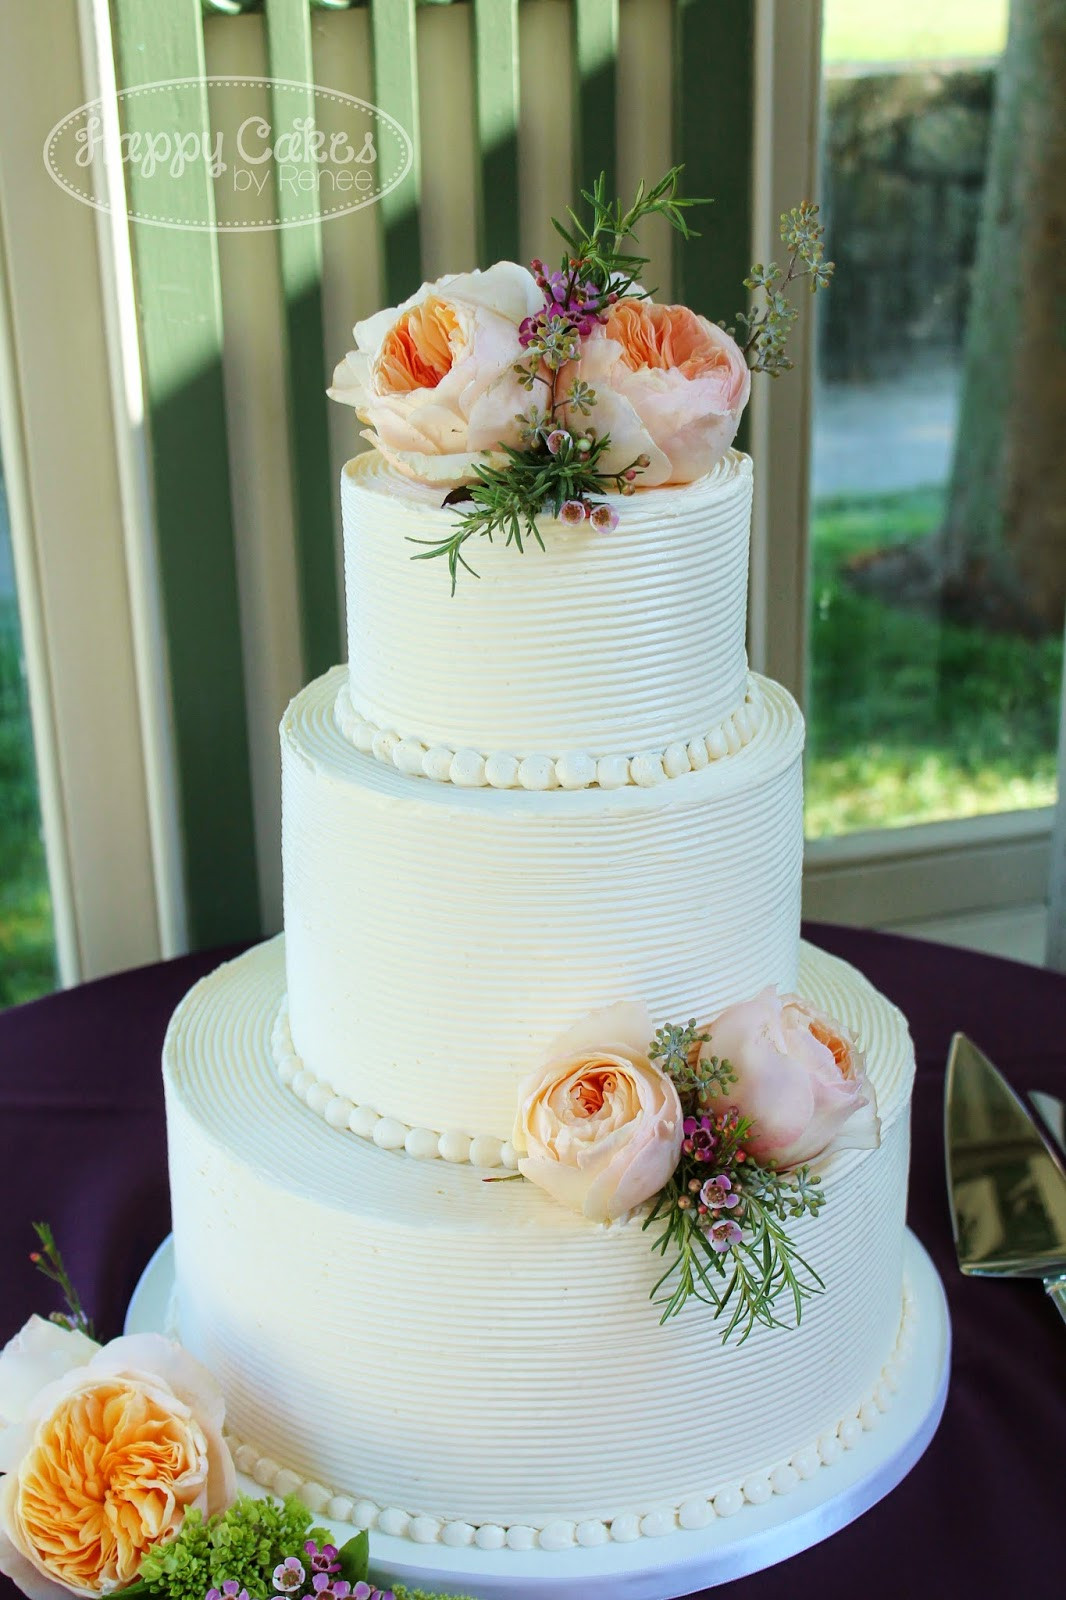 Wedding Cakes With Buttercream Frosting  Happy Cakes Bakes bed Buttercream Cake